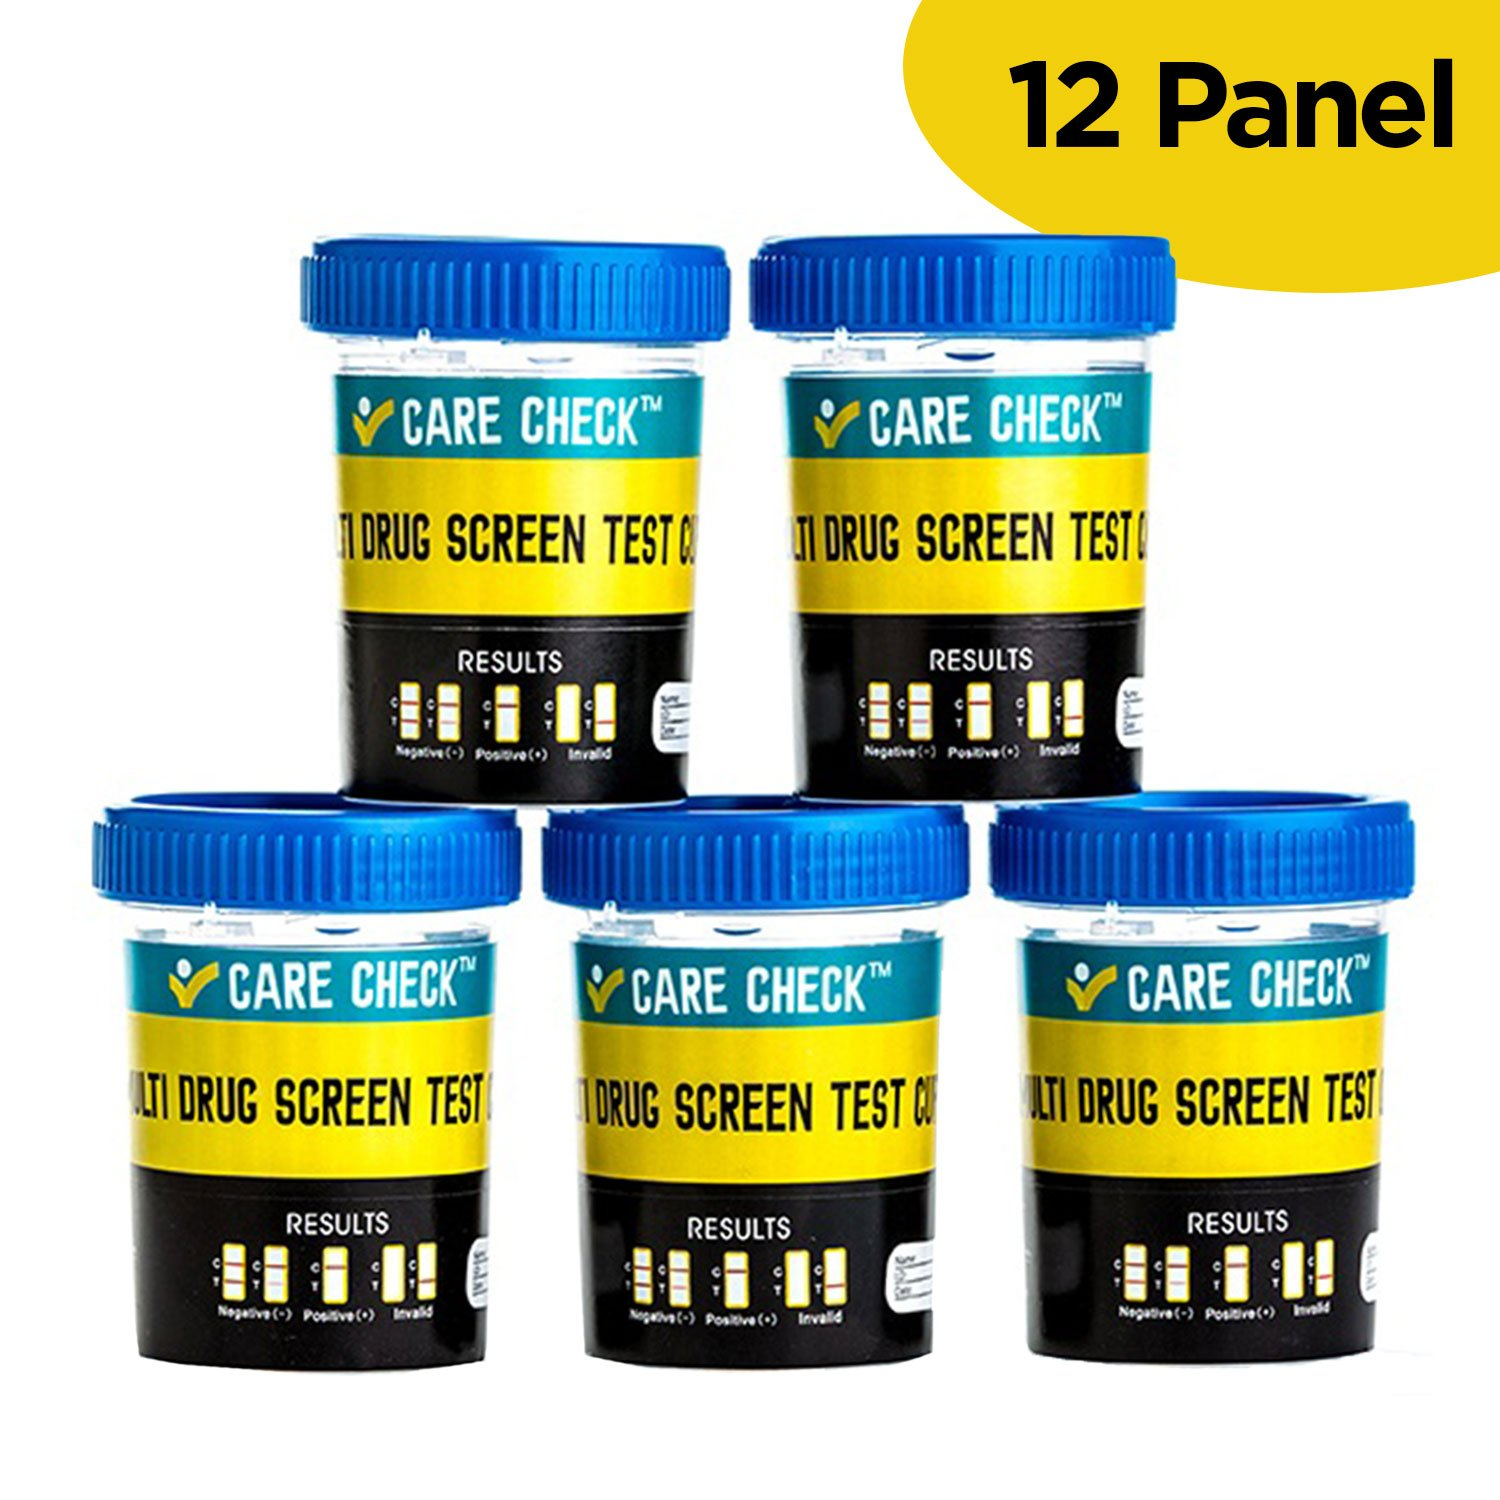 Care Check Sterile 12 Panel Multi Drug Screen Test Urine Sample Collection Cups, (AMP, BZO, BAR, COC, MET, MDMA, MTD, MOP, OXY, PCP, THC and TCA) 5 Pack Individually Wrapped Drug Test Cups